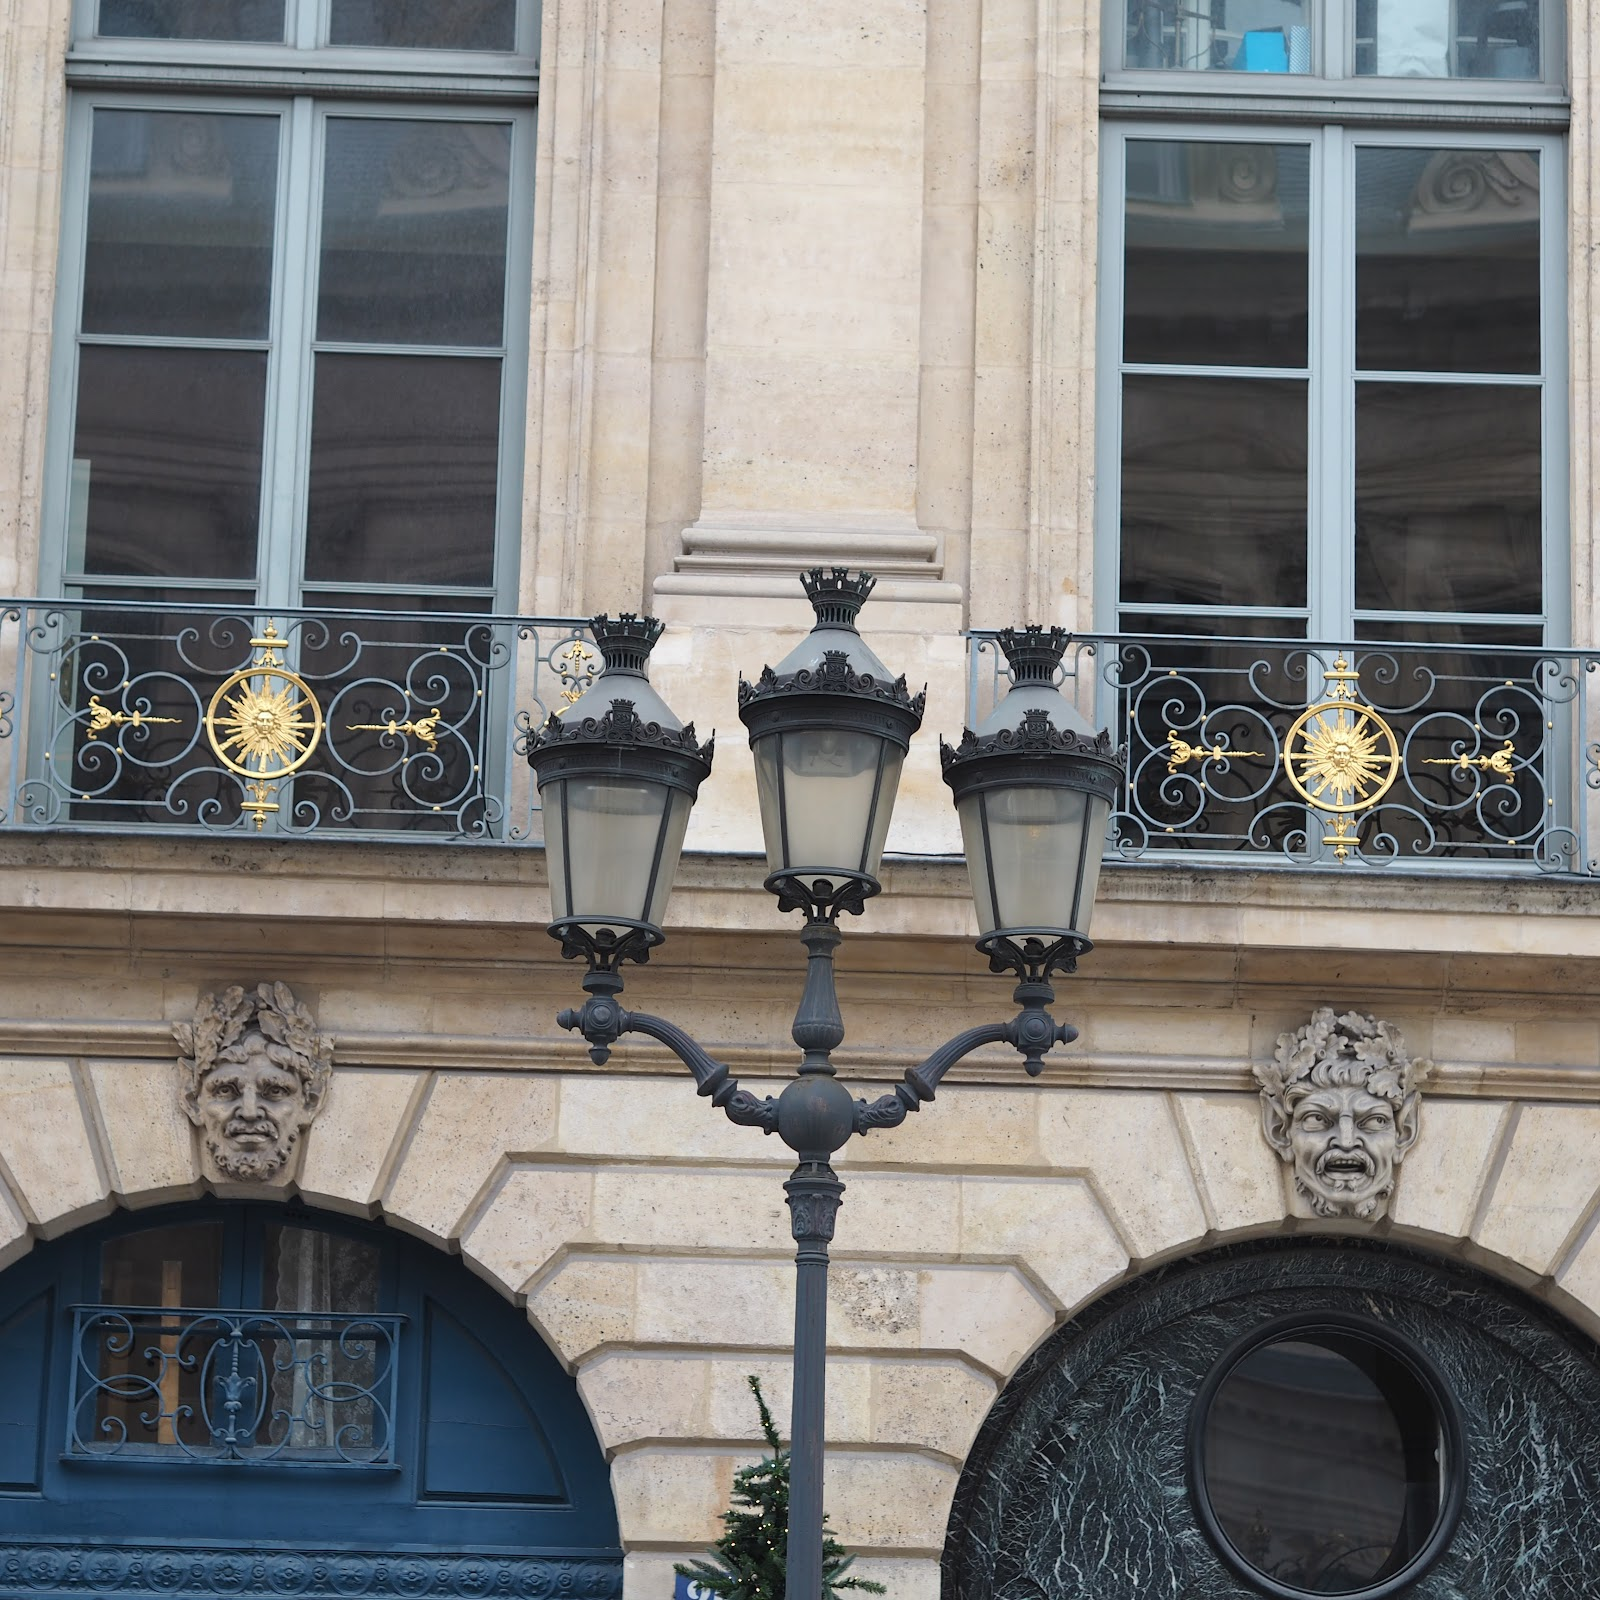 Lamp in Place de vendome, Paris